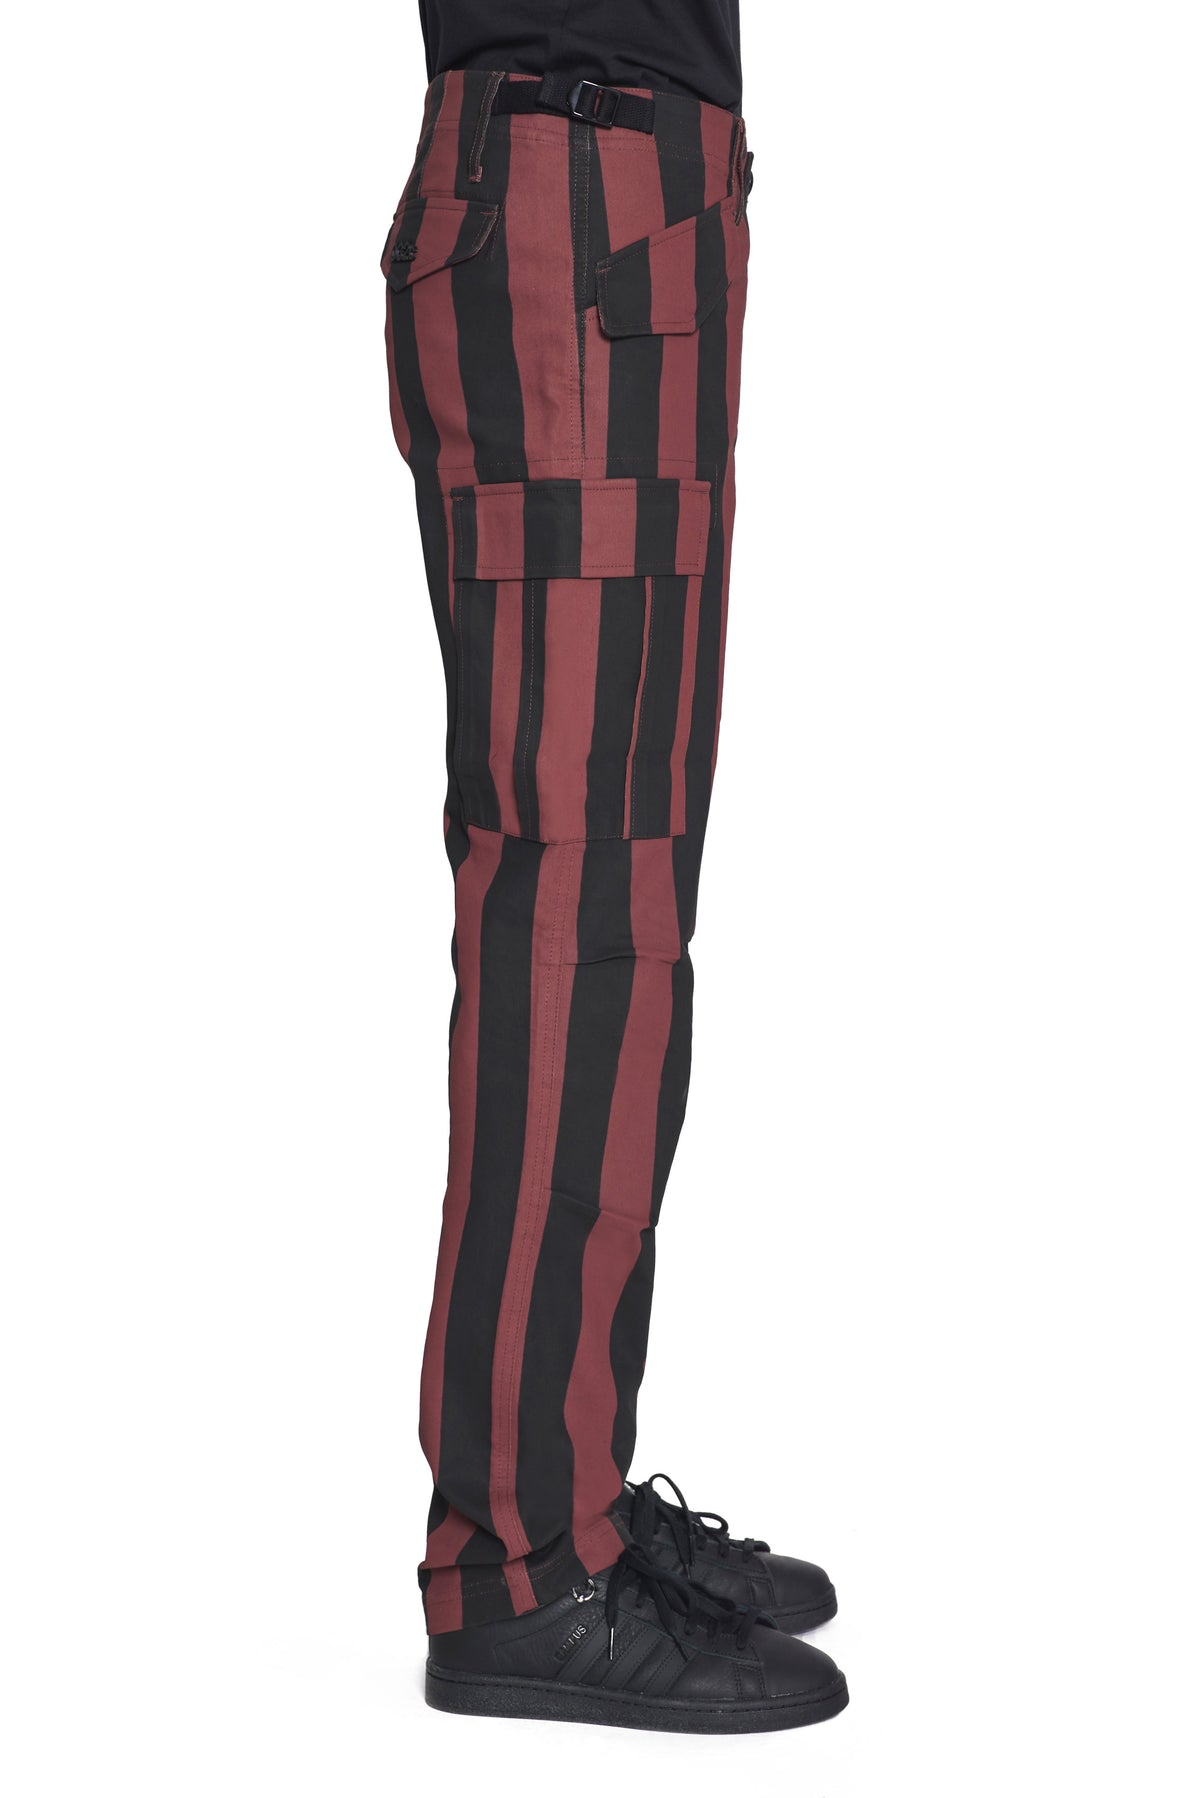 "032c Die Tödliche Doris ""Versatile"" Pants Burgundy and Black Stripe"